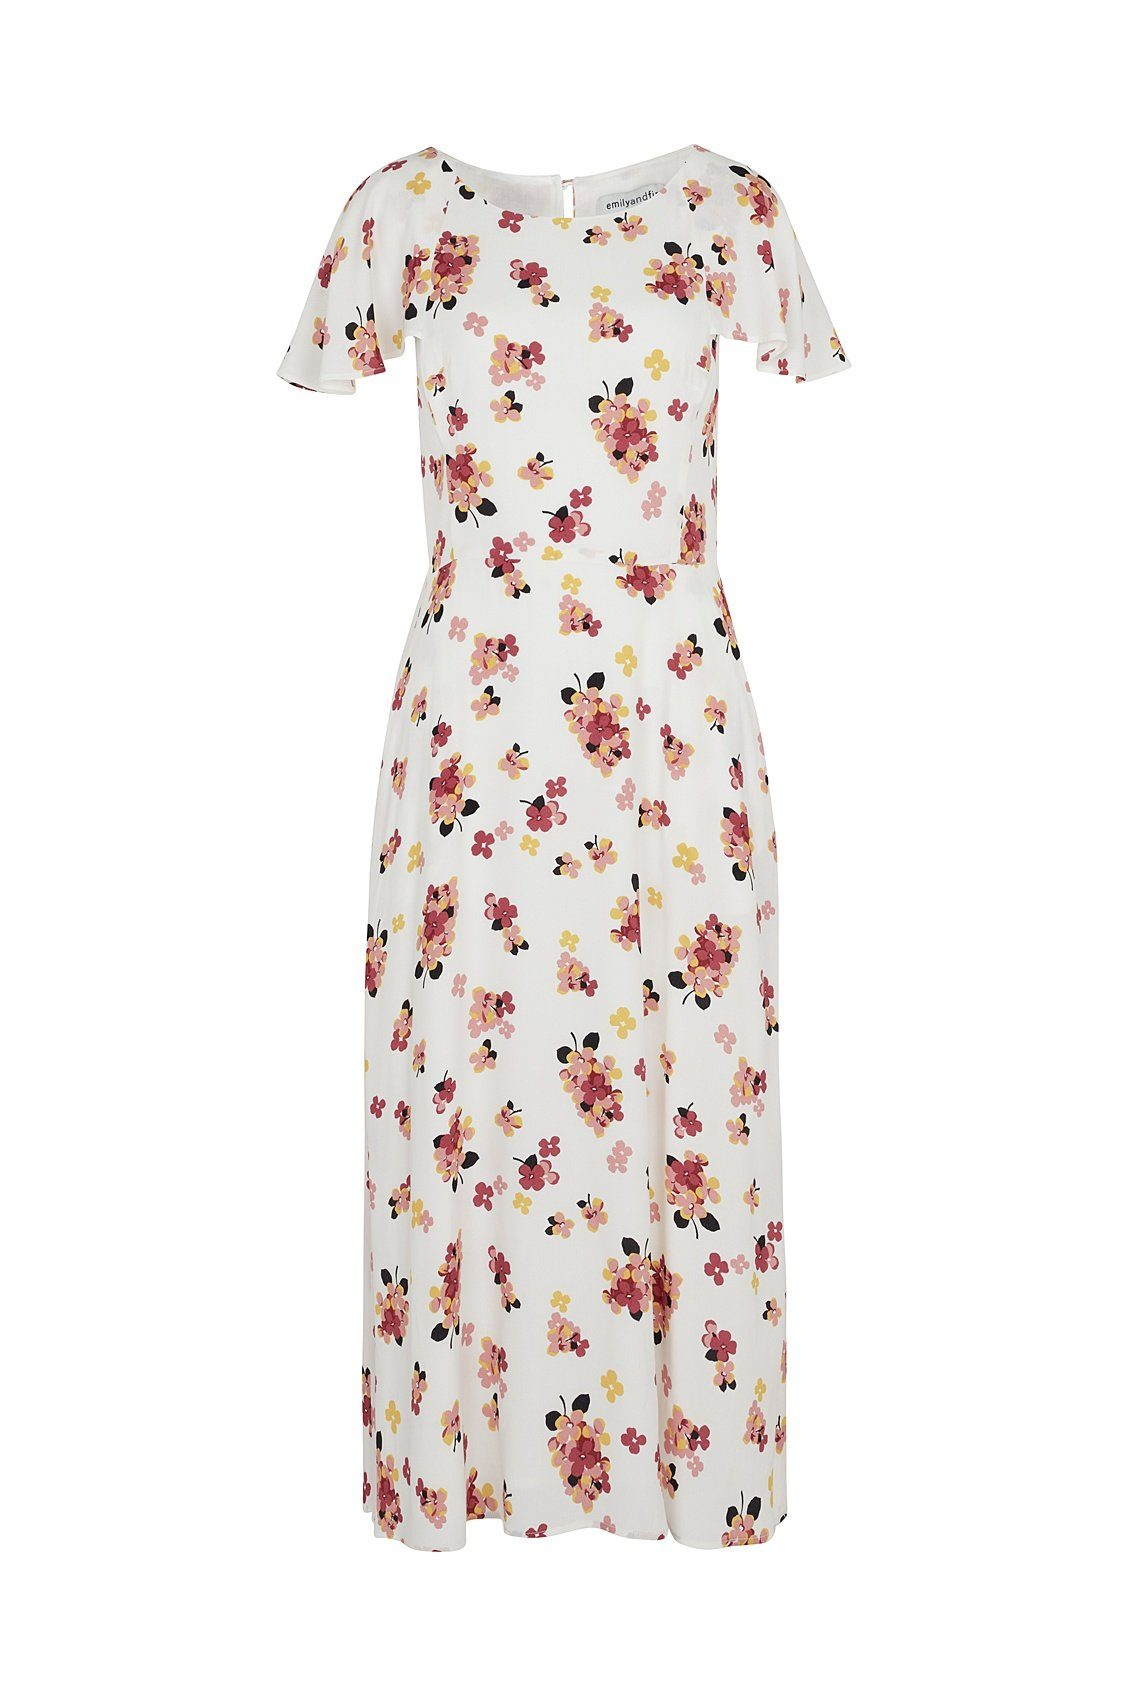 Celeste Emily & Fin Desert Blooms Midi Dress Dress BouChic | Homeware, Fashion, Gifts, Accessories